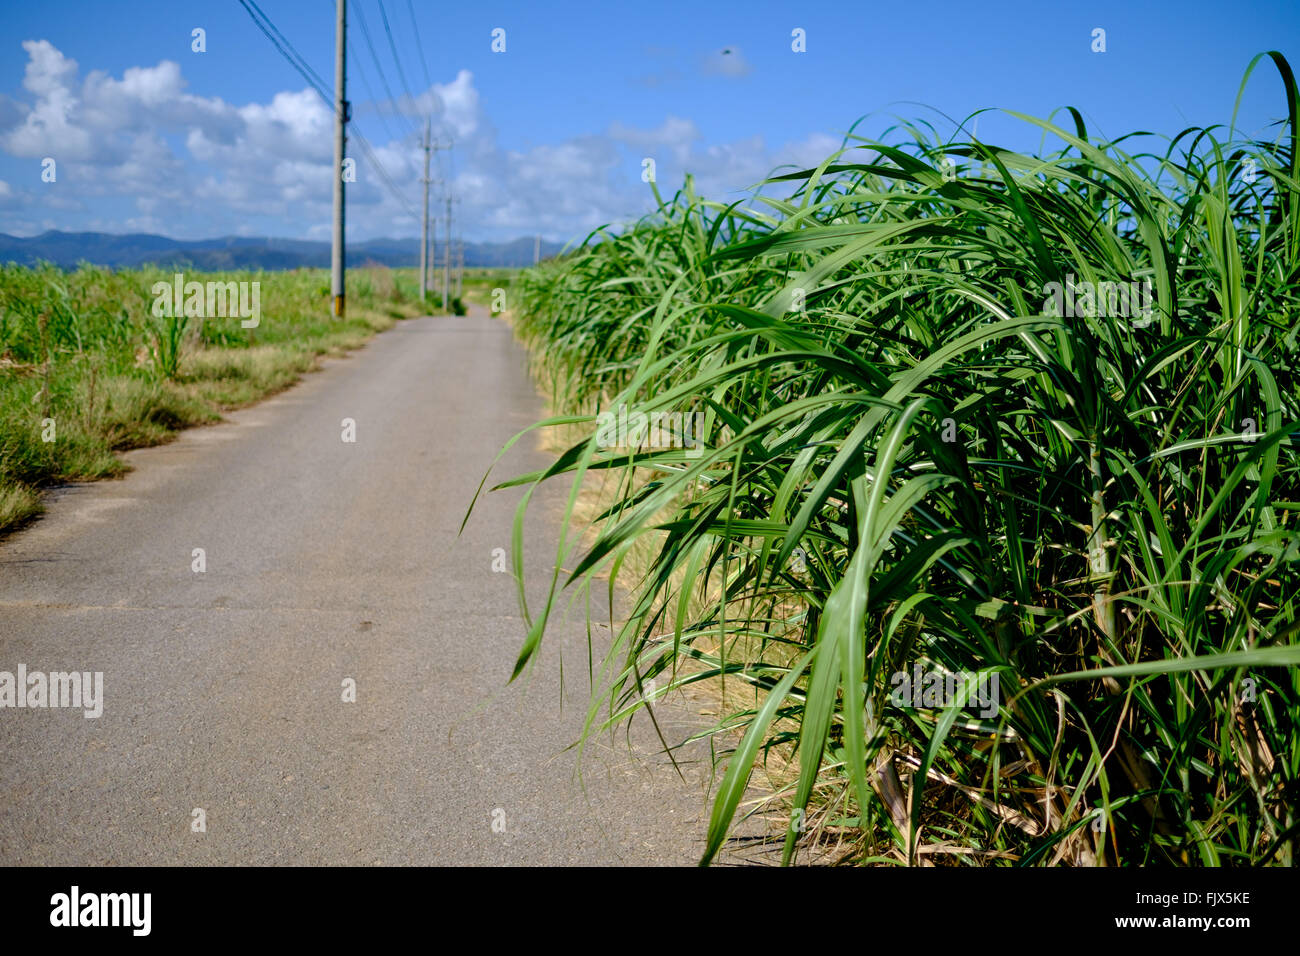 Road Amidst Field Against Sky - Stock Image